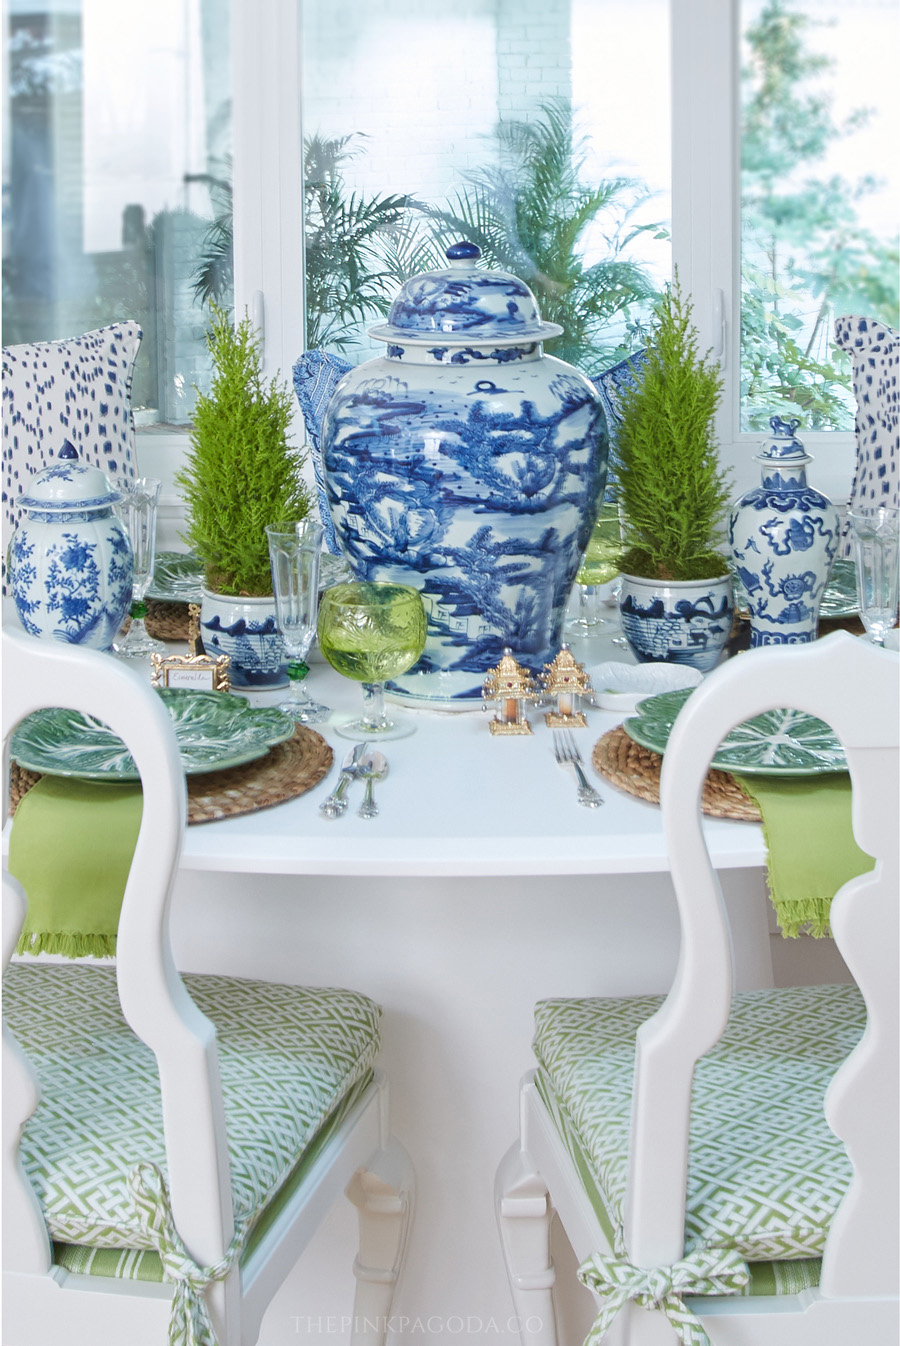 Tabletop styling by Susan Palma for The Pink Pagoda's fall 2017 One Room Challenge™ with lemon cypress topiaries and lots of blue and white.